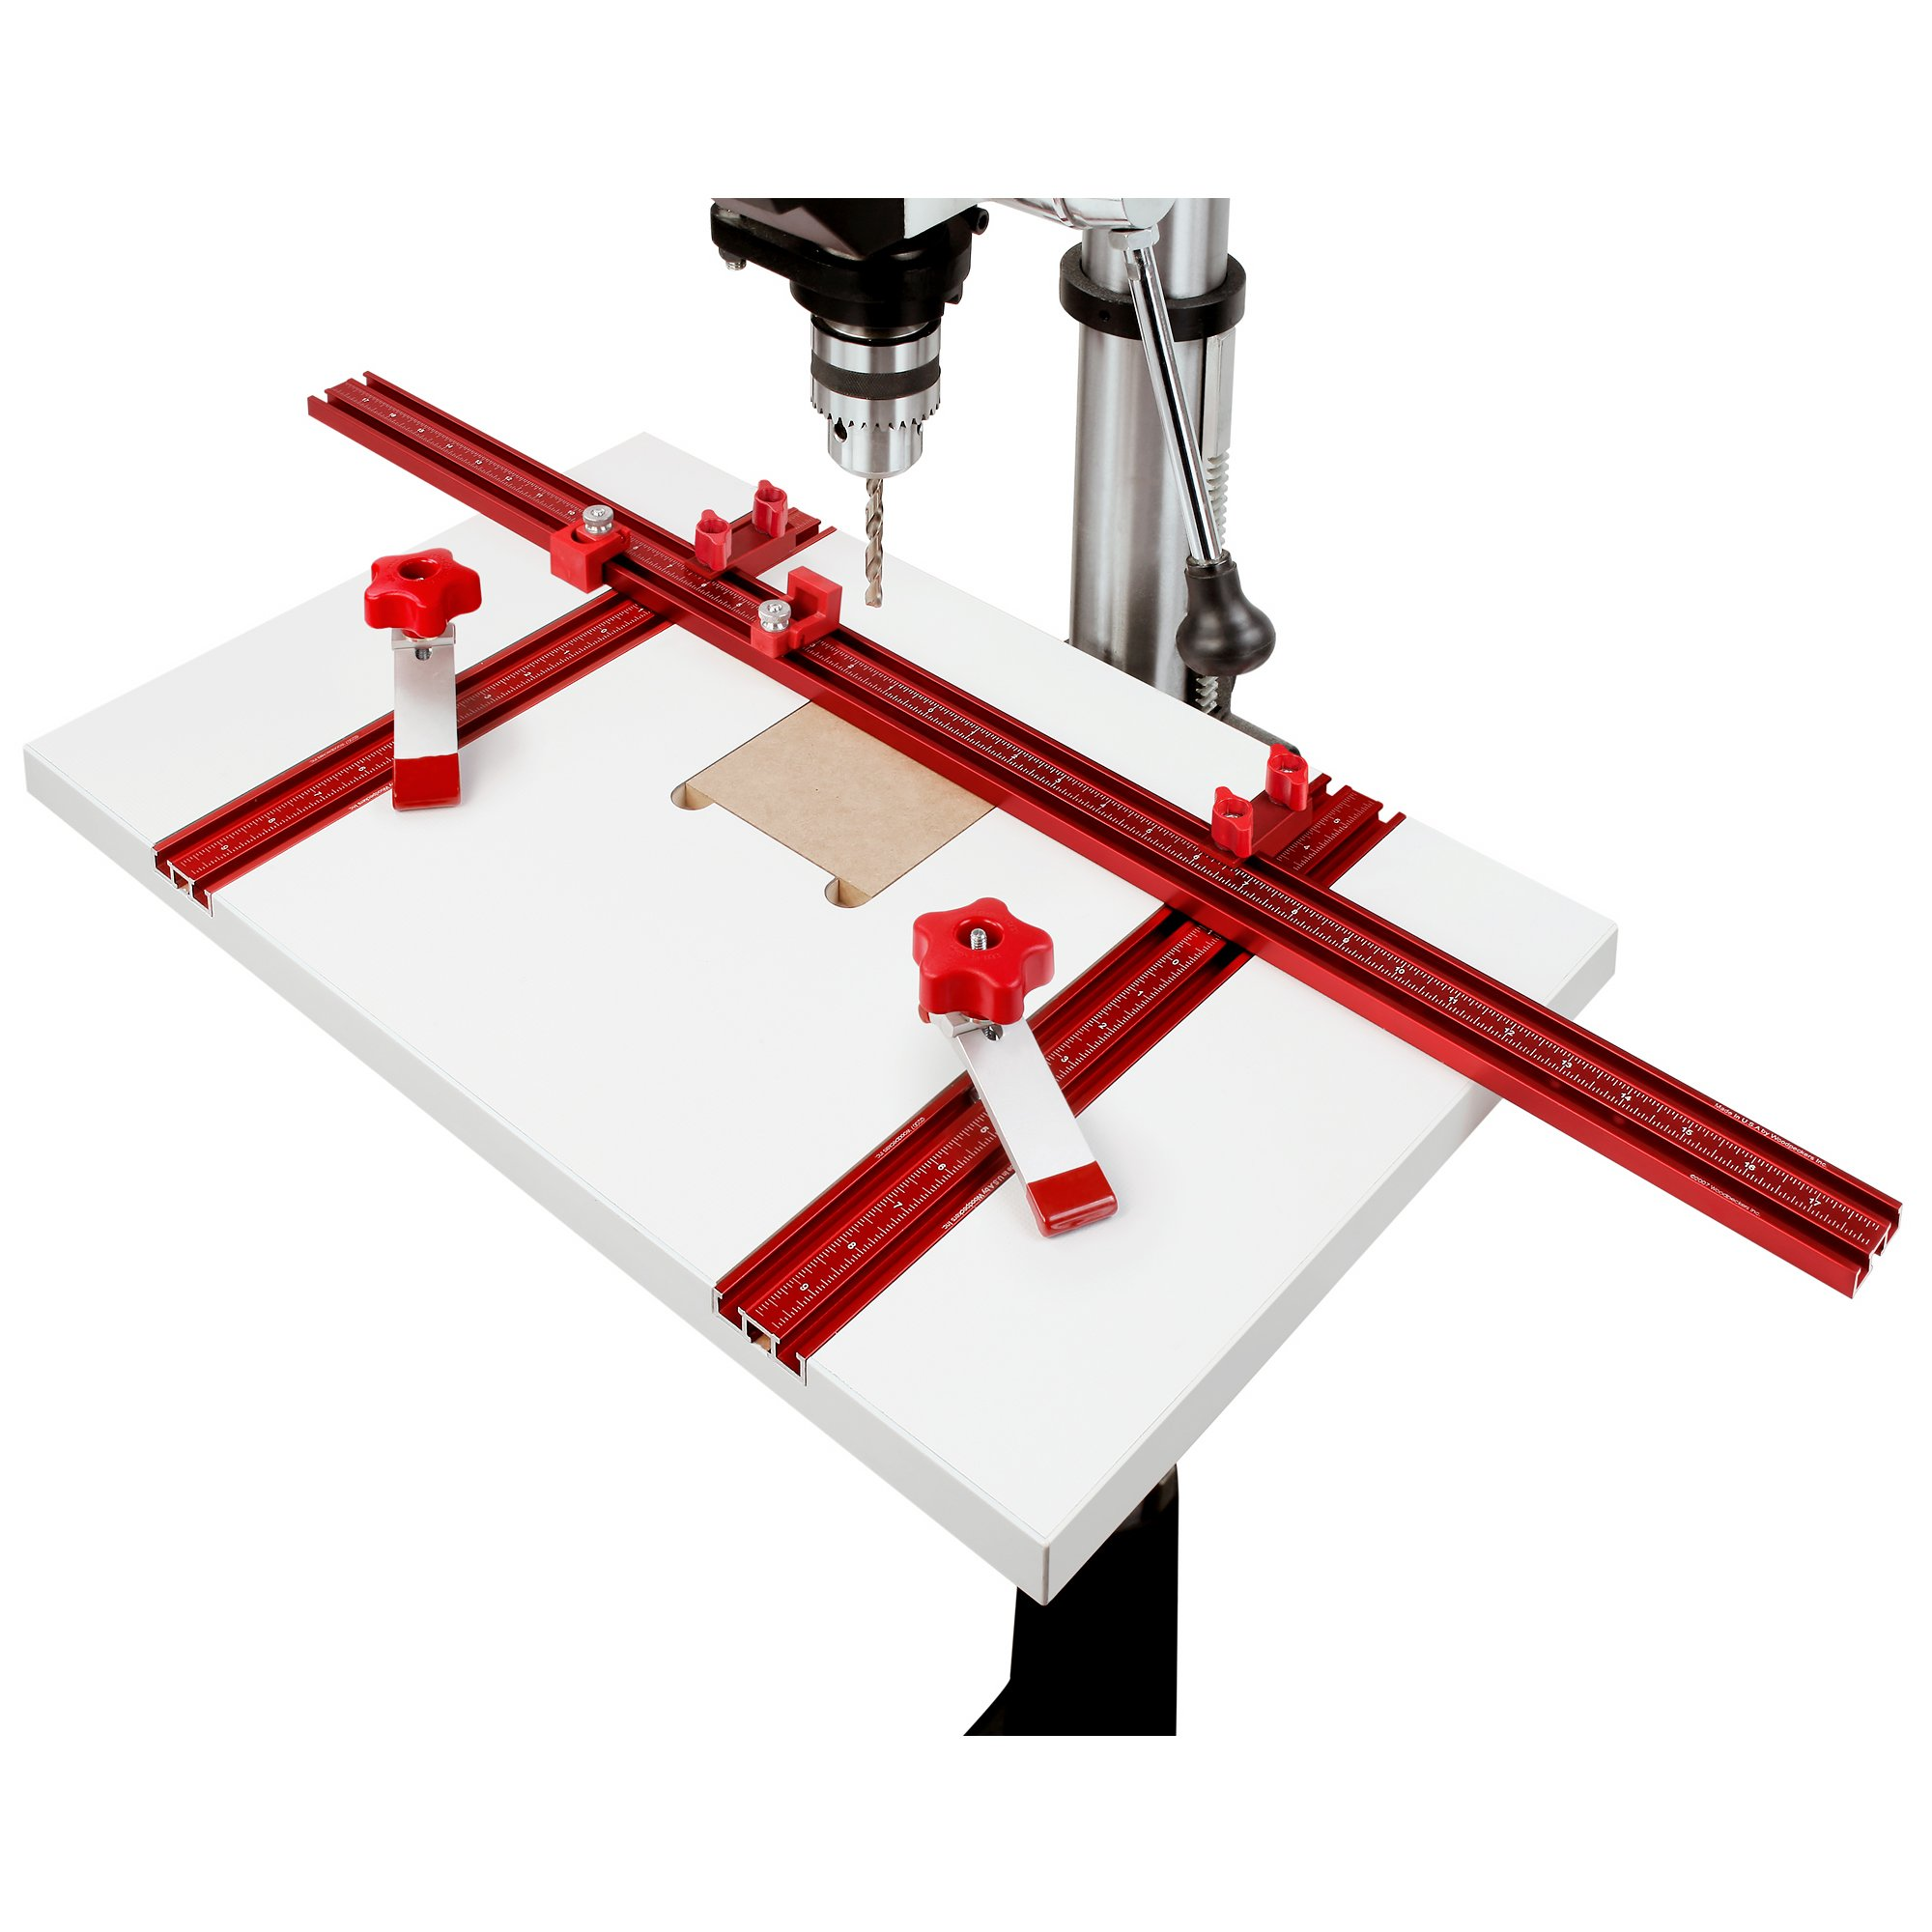 Woodpeckers WPDPPACK1 Drill Press Table with 2 Hold Down Clamps by Woodpeckers